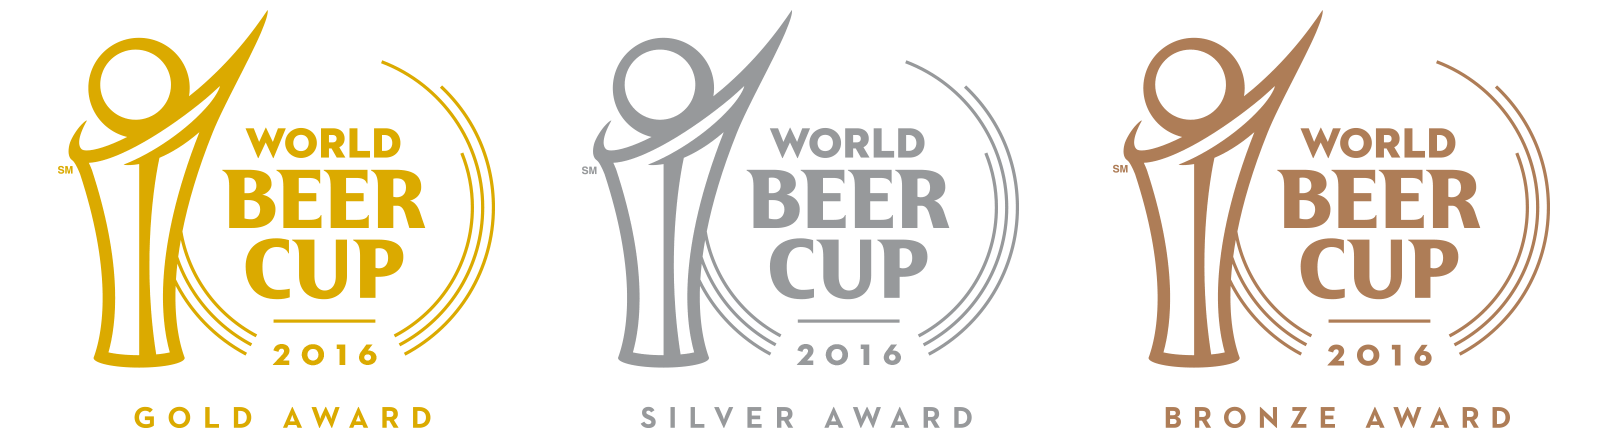 World Beer Cup Logos